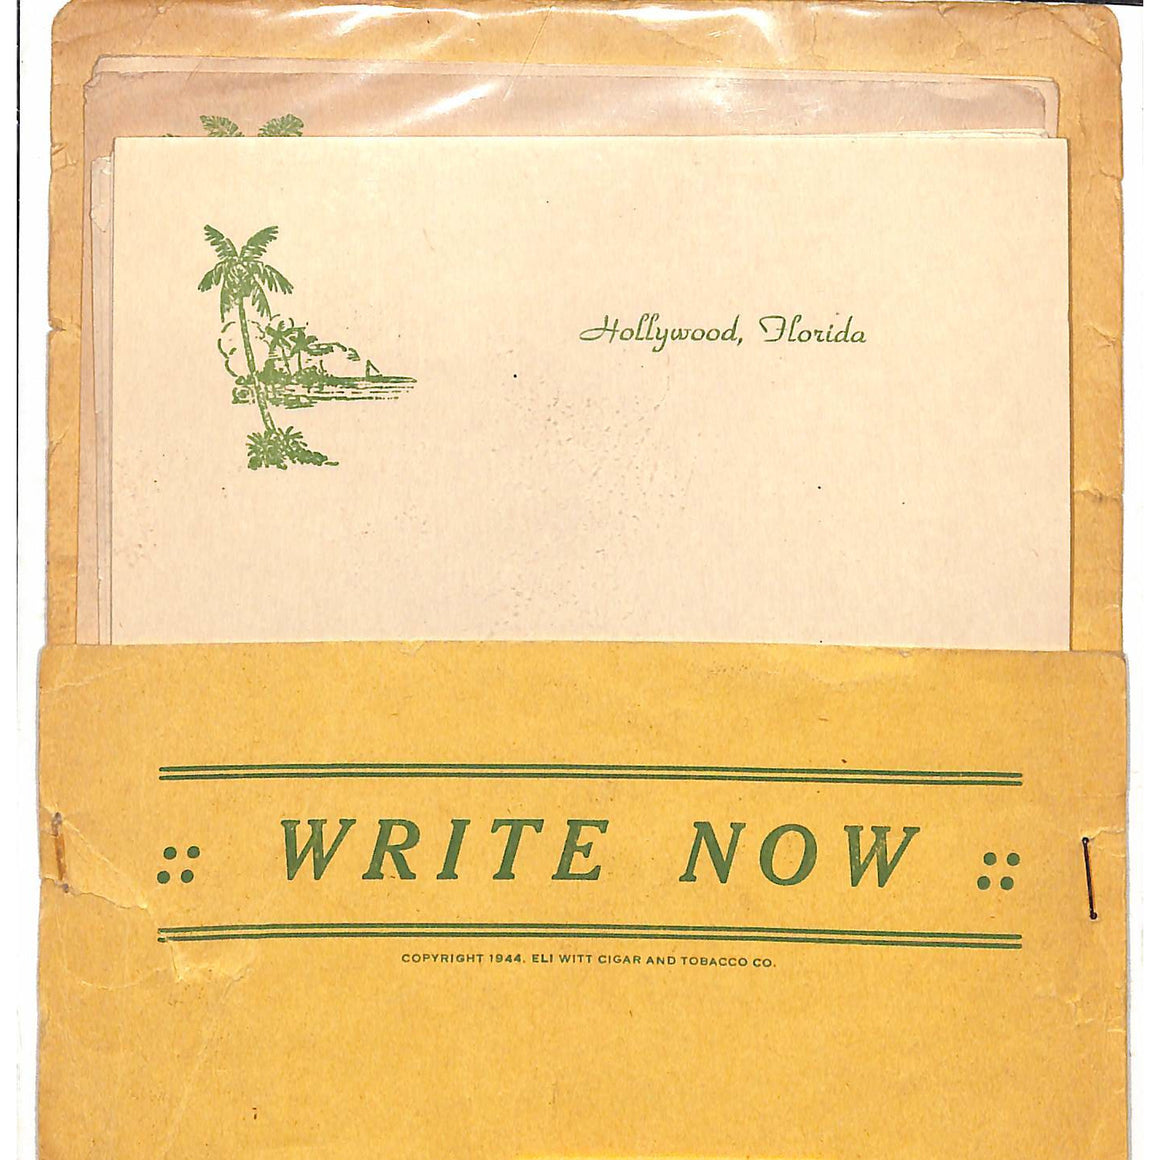 Write Now Hollywood, Florida Packet